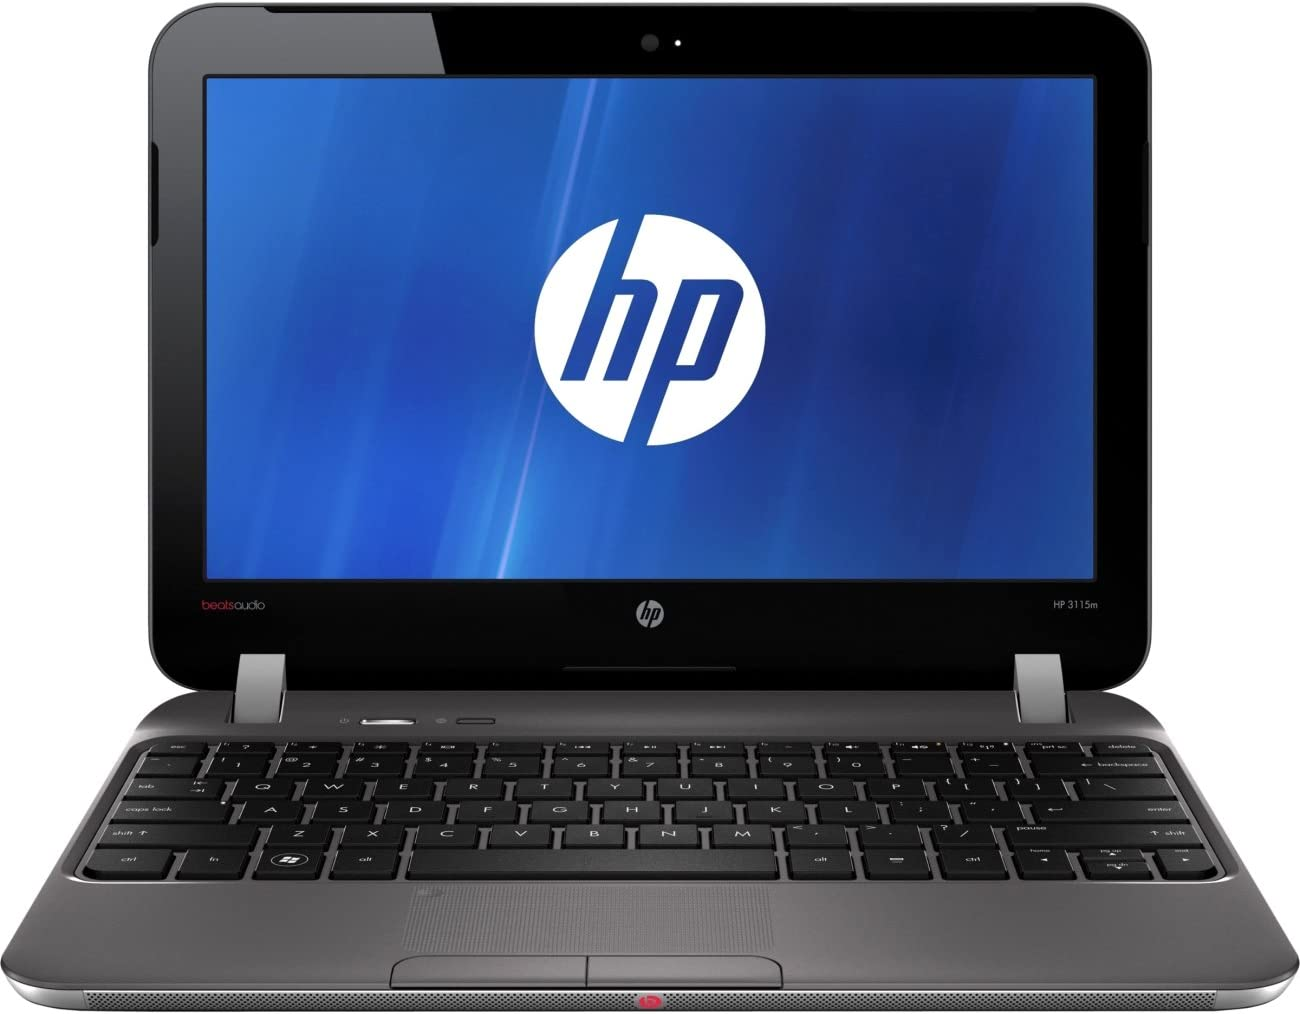 "HP 3115m Laptop - AMD E-450 4GB RAM 320GB 11.6"" Windows 7 Home Premium"